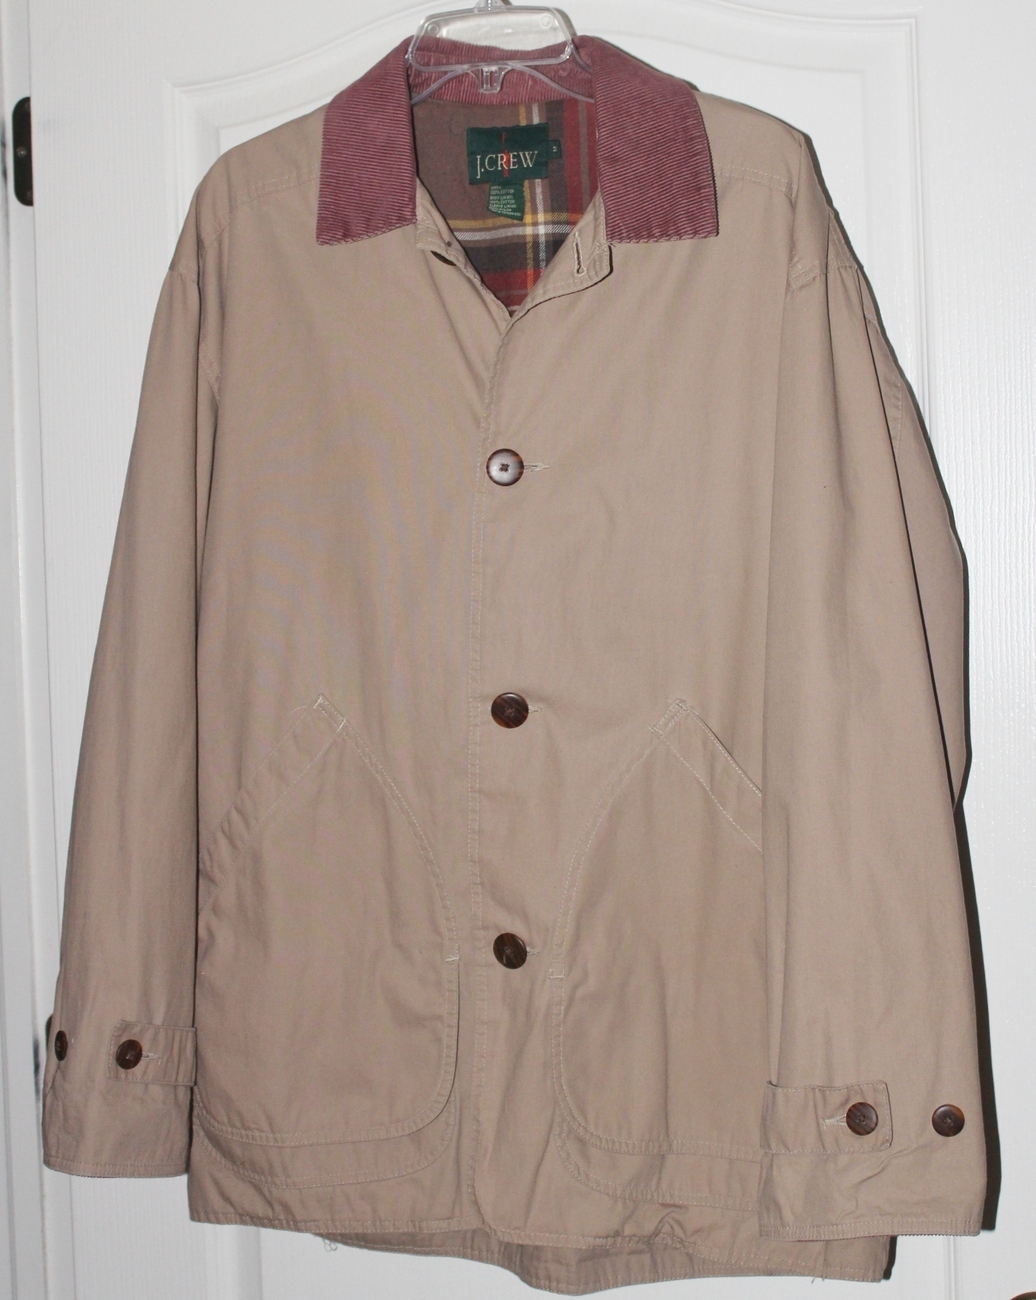 Primary image for J. Crew Men's Khaki Field Jacket  Size Medium